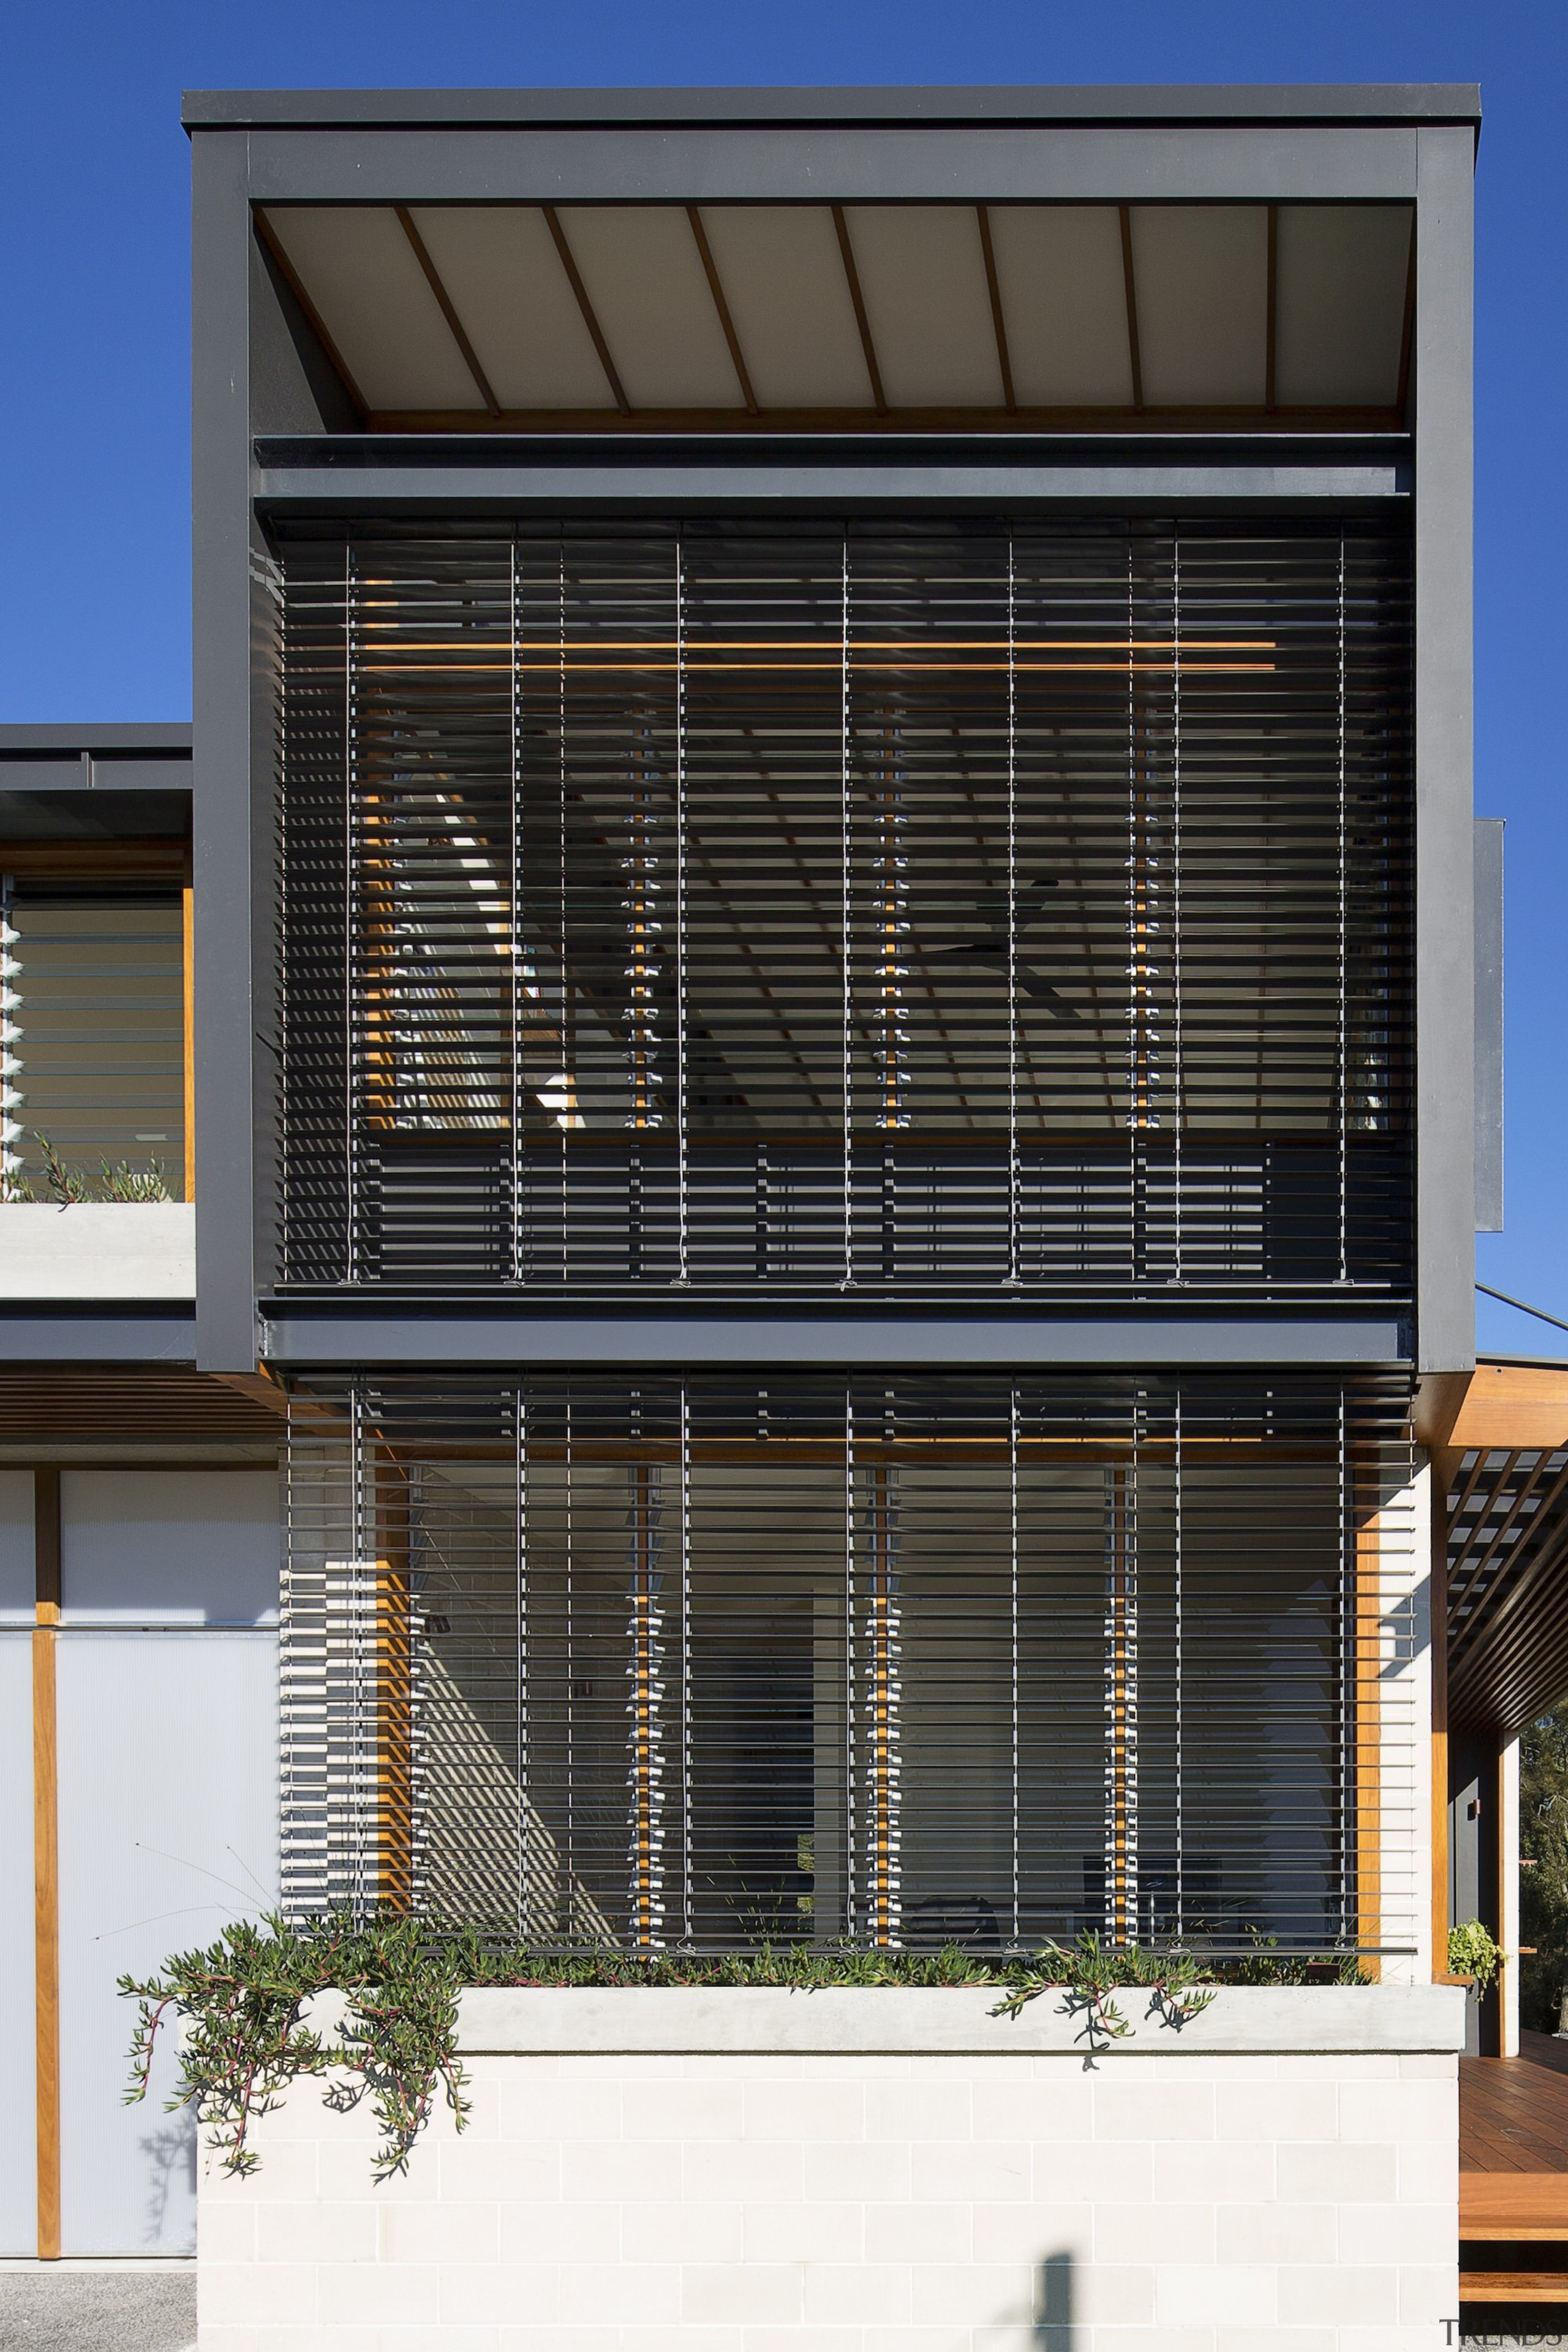 Operable louvers to control sunlight - Operable louvers architecture, building, commercial building, corporate headquarters, daylighting, facade, glass, home, house, real estate, residential area, structure, window, black